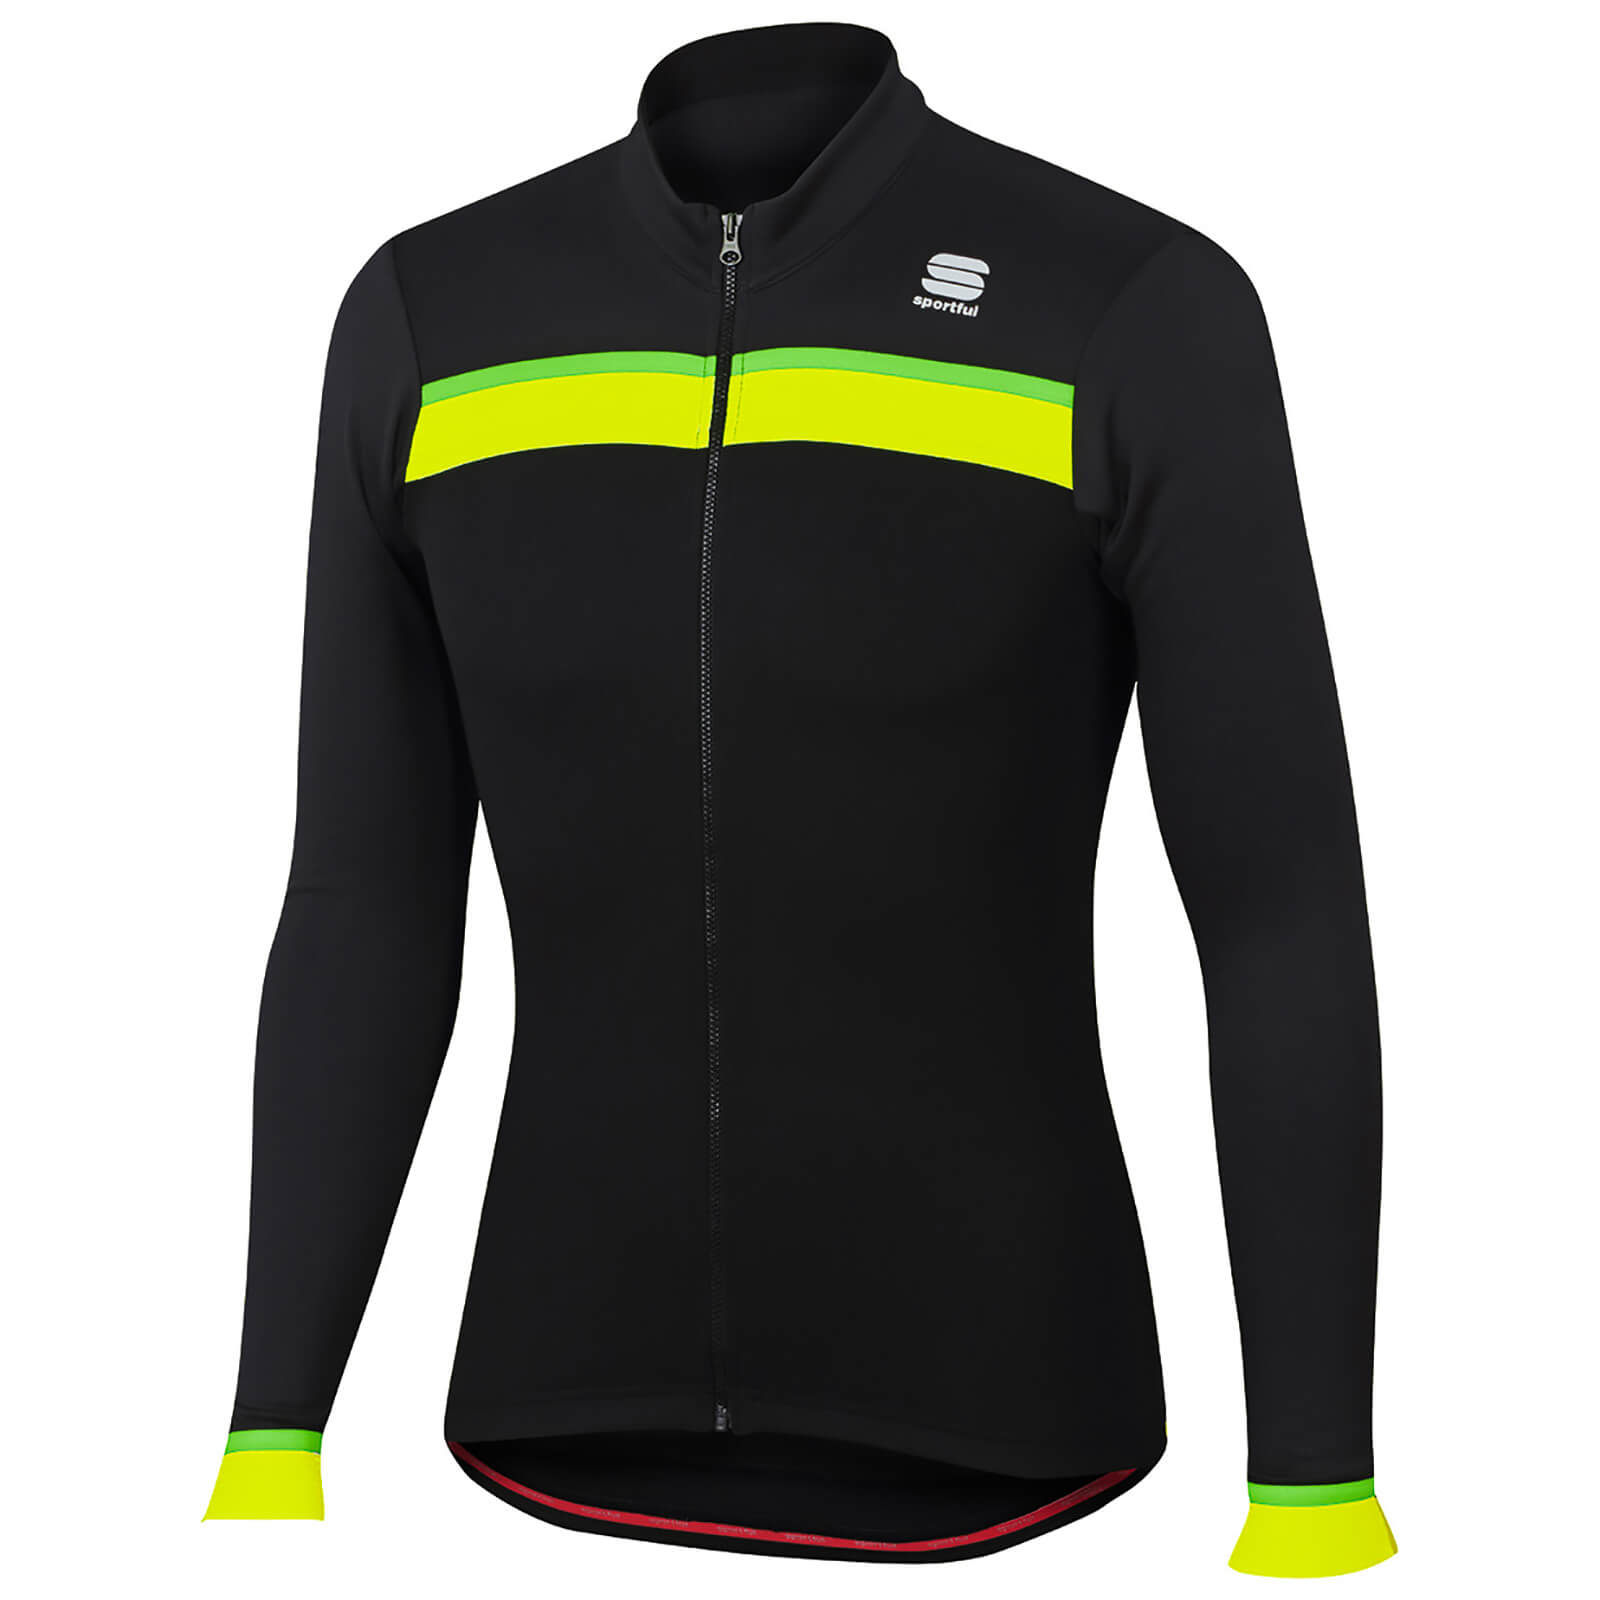 Sportful Pista Thermal Jersey - Black/Anthracite